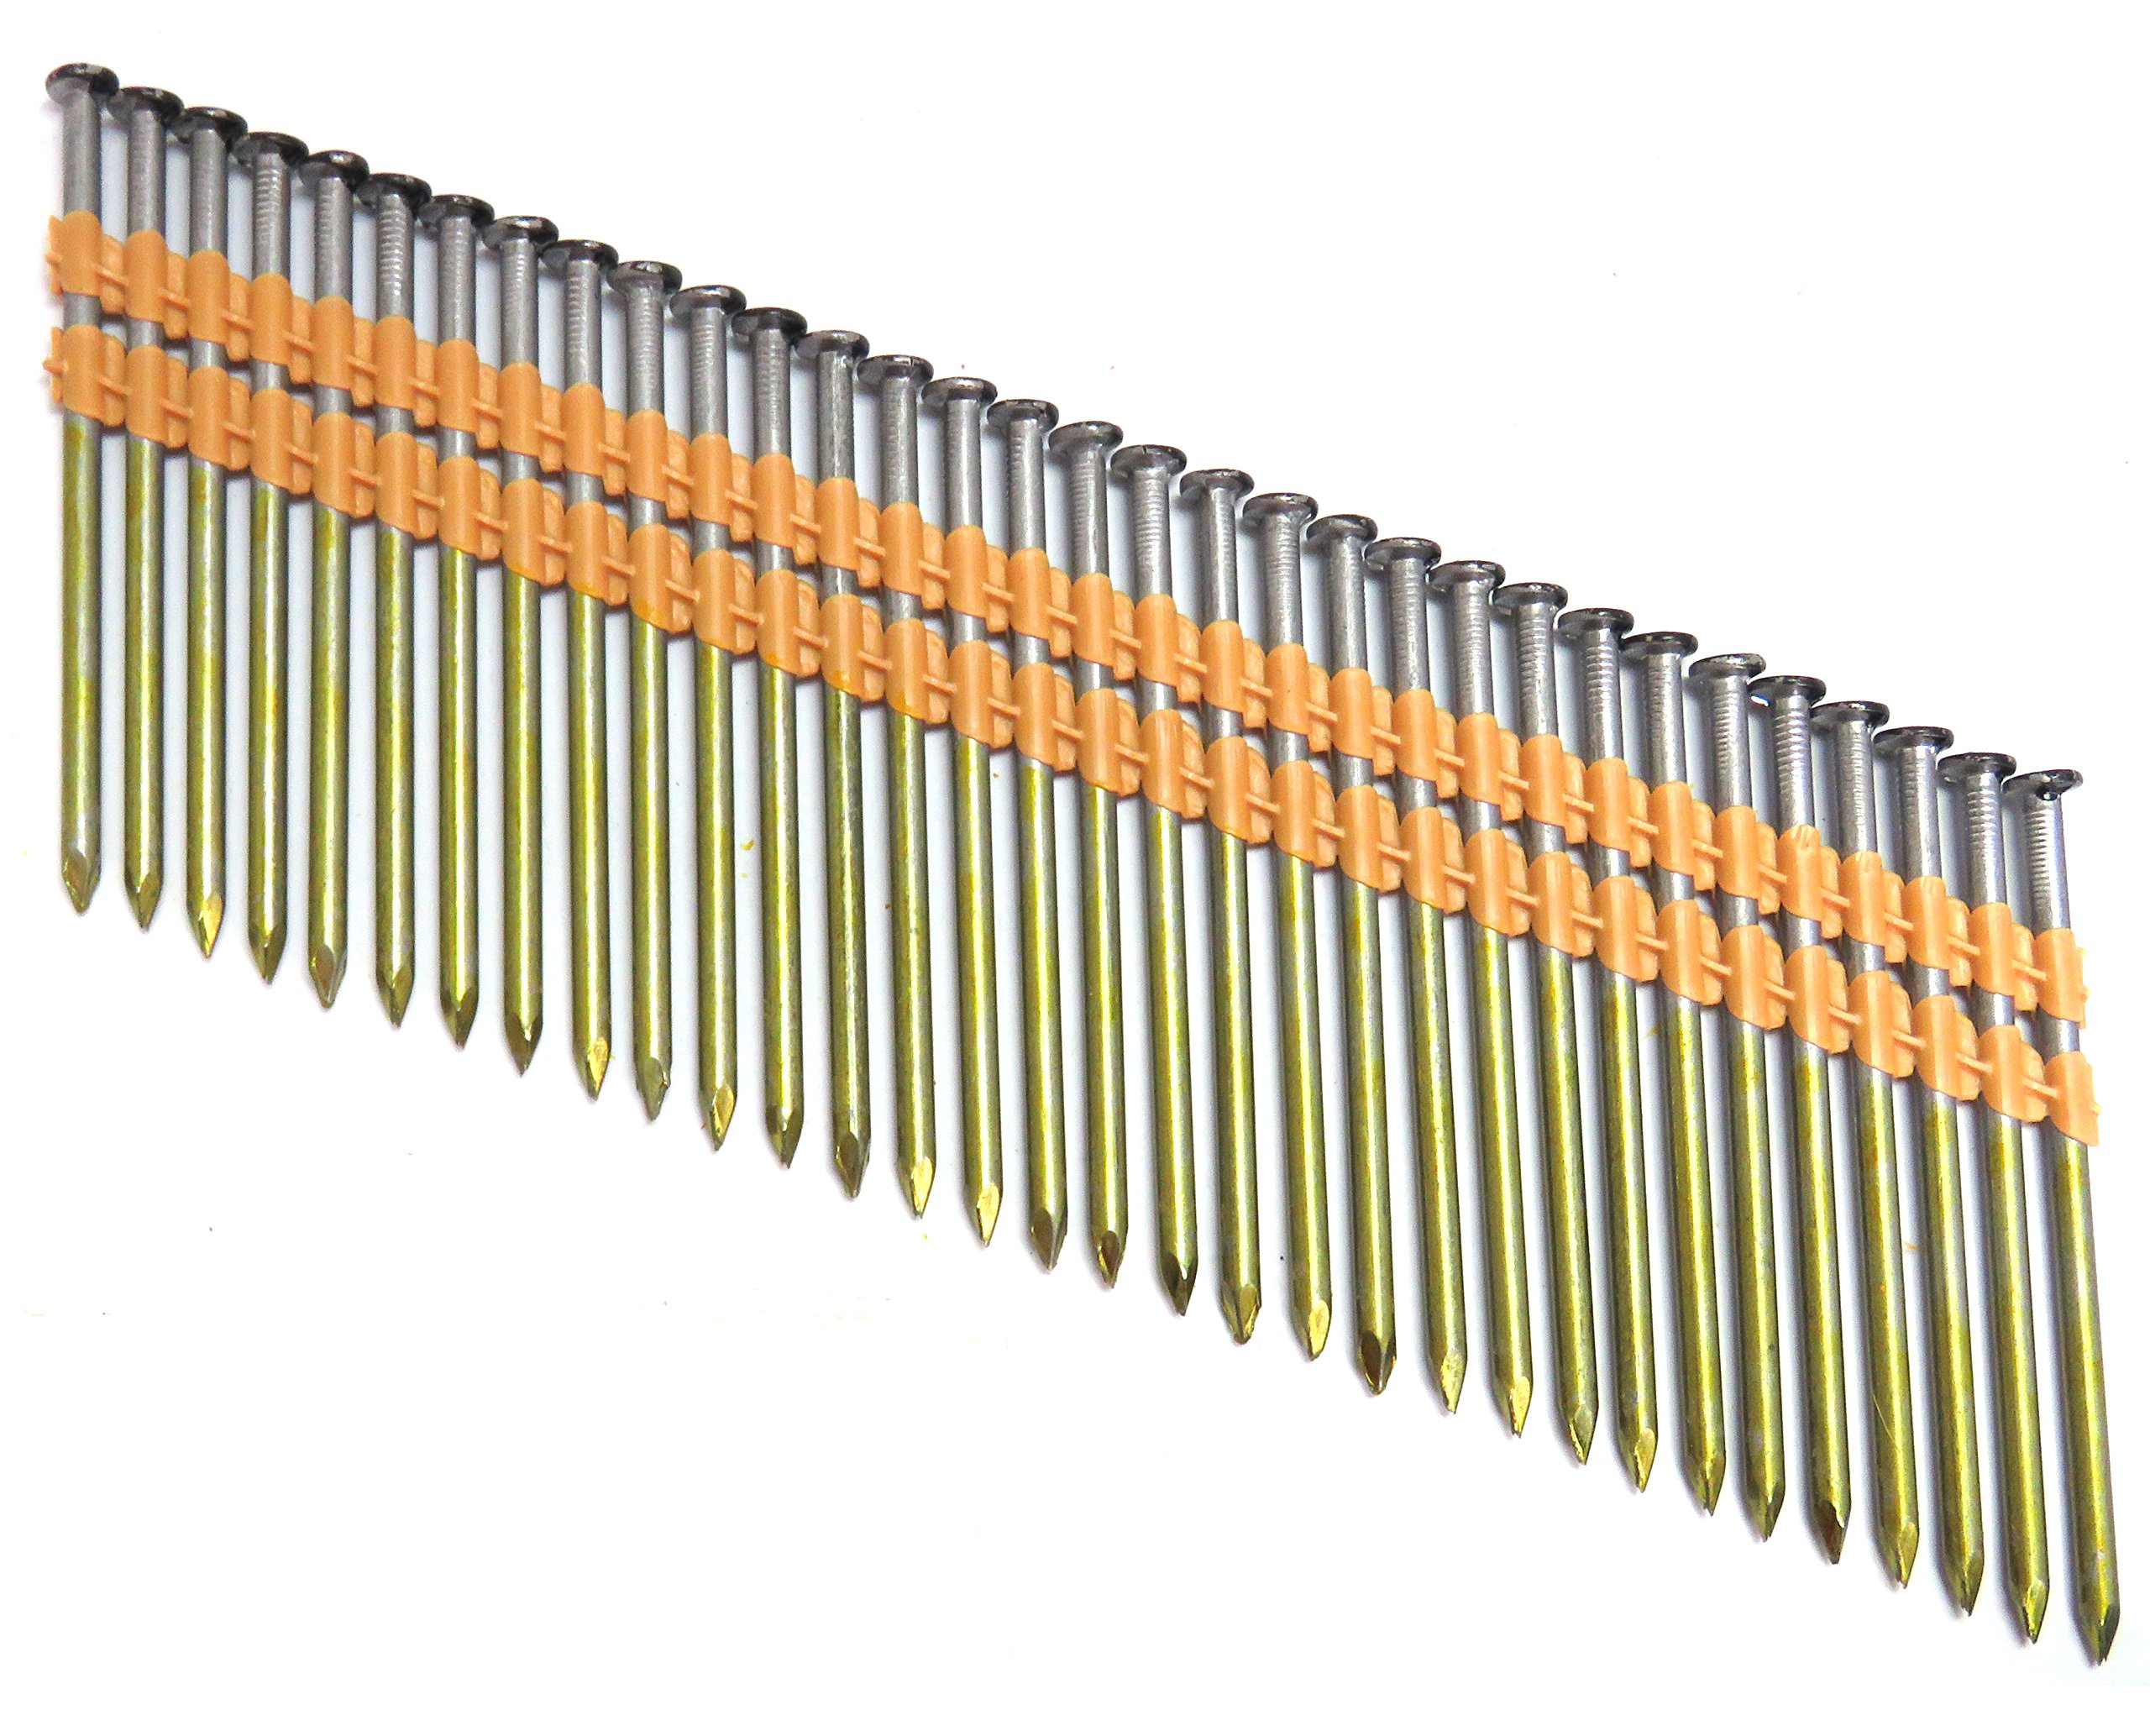 TrueSpec HXB32148P Tree Island 12D Common 3-1/4'' x .148'' Smooth Bright Framing Nails